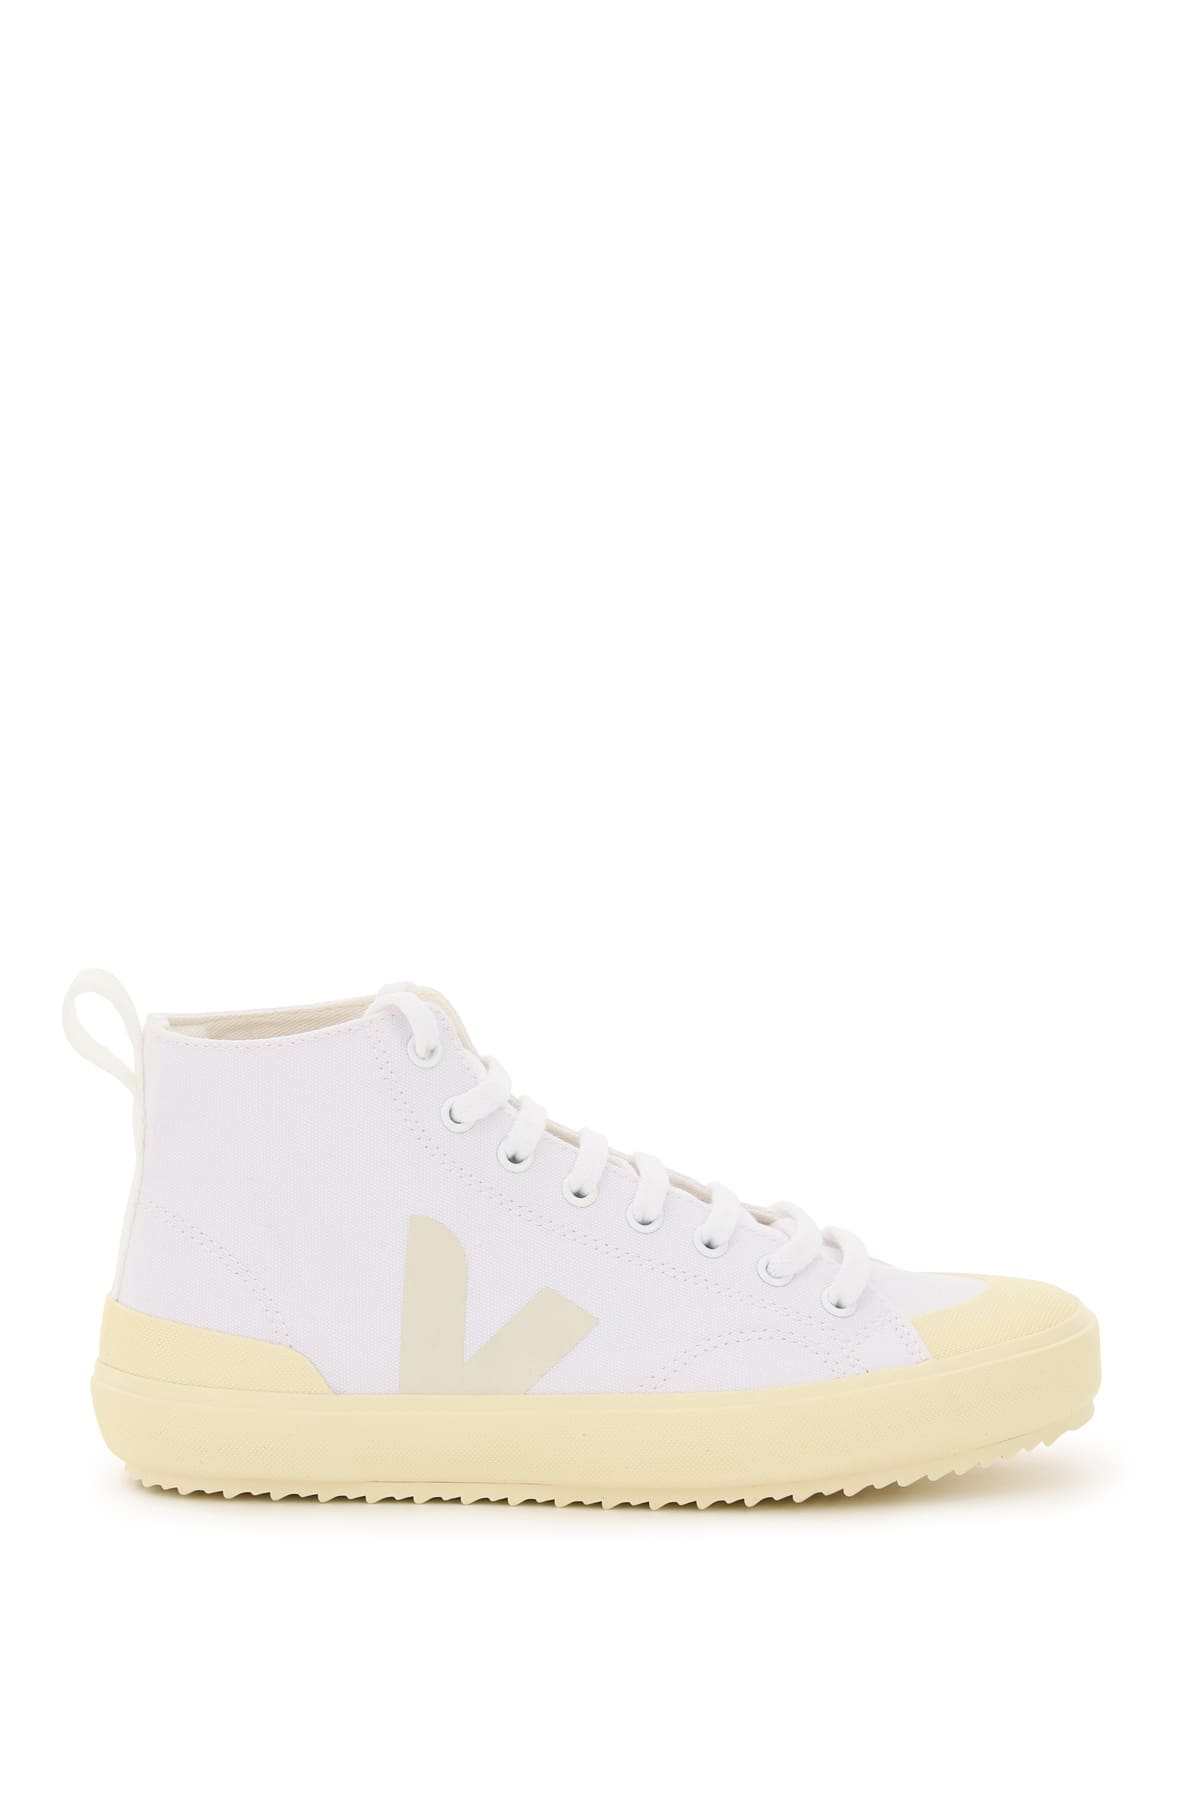 Veja NOVA HT CANVAS HIGH-TOP SNEAKERS